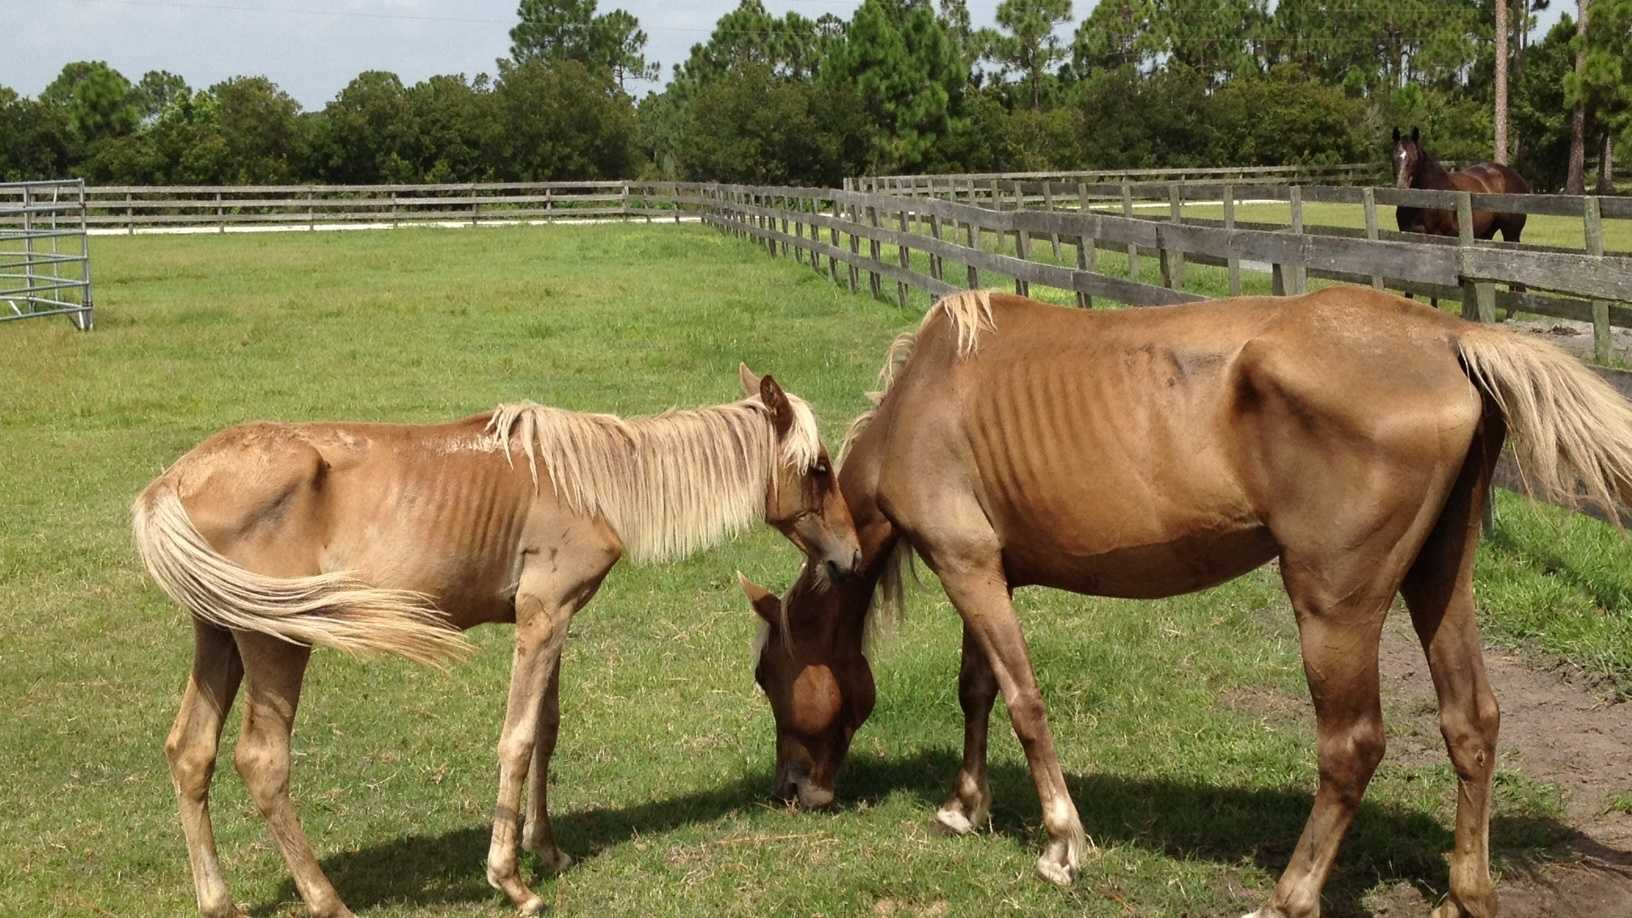 These are two of the three malnourished horses that were rescued from a farm in western Martin County.